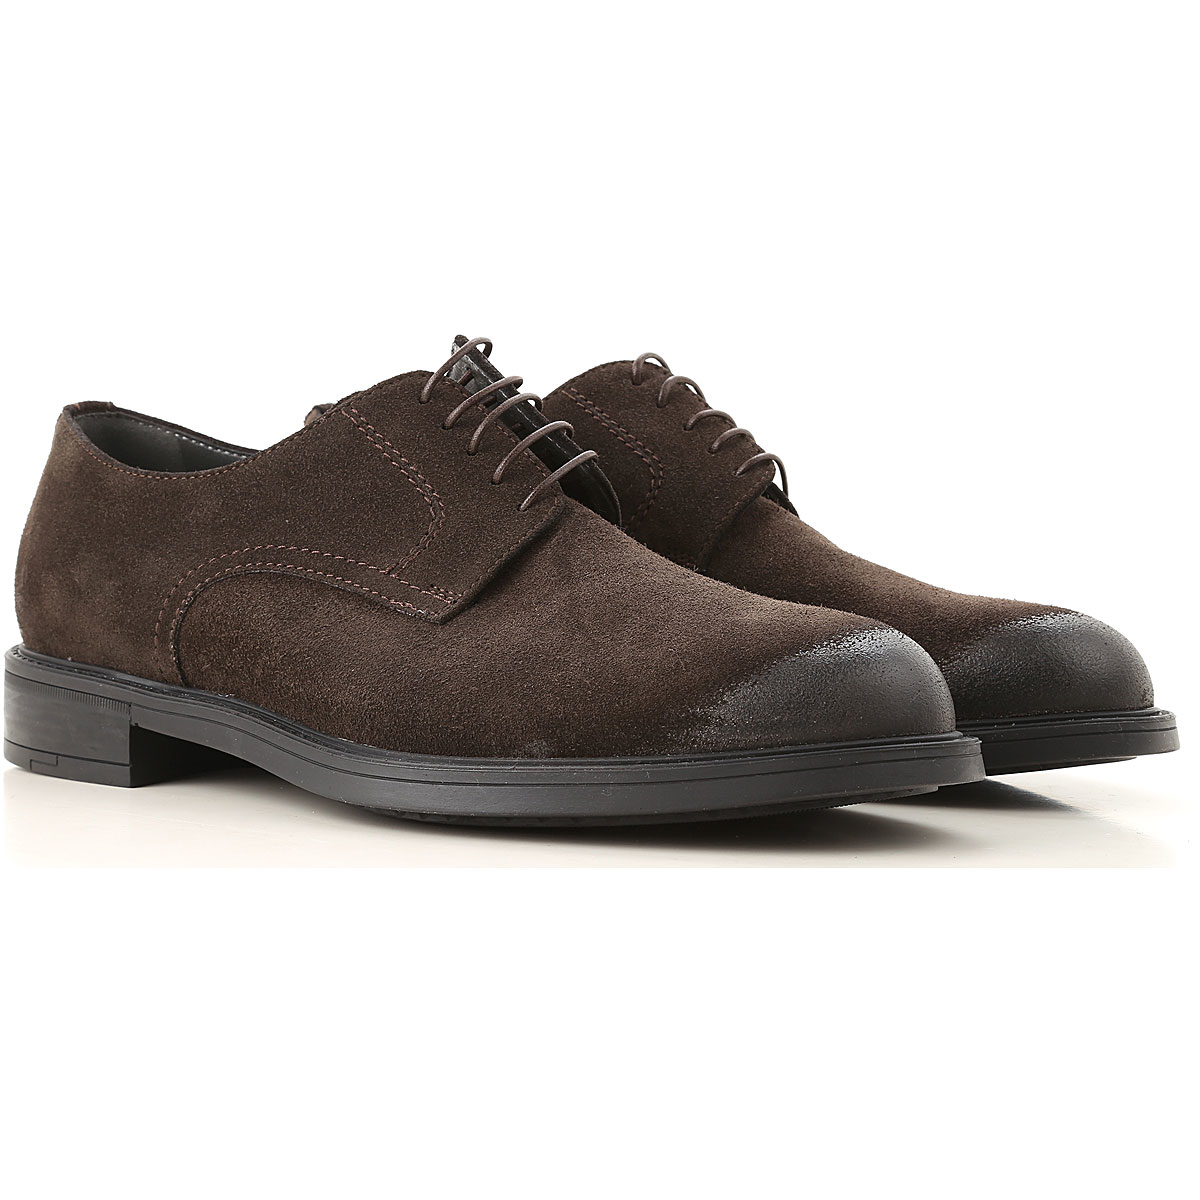 Moreschi Lace Up Shoes for Men Oxfords Derbies and Brogues On Sale DK - GOOFASH - Mens FORMAL SHOES